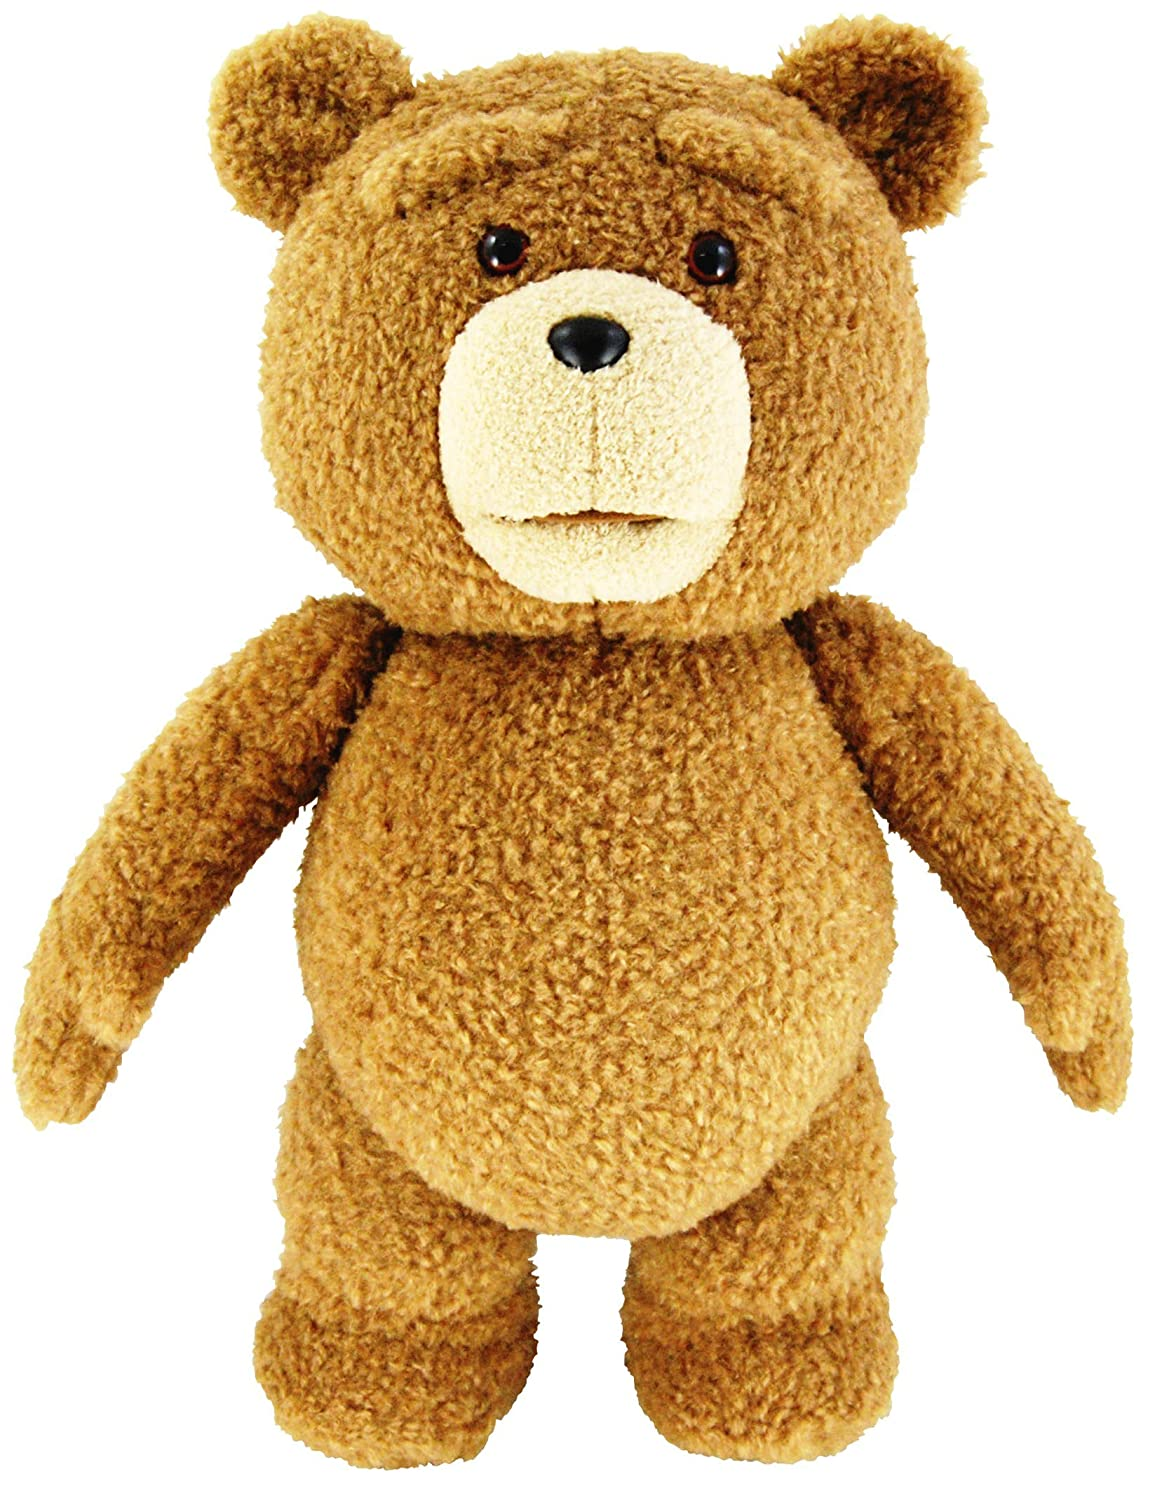 Ted 24″ Plush with Sound, 12 Phrases $54.83